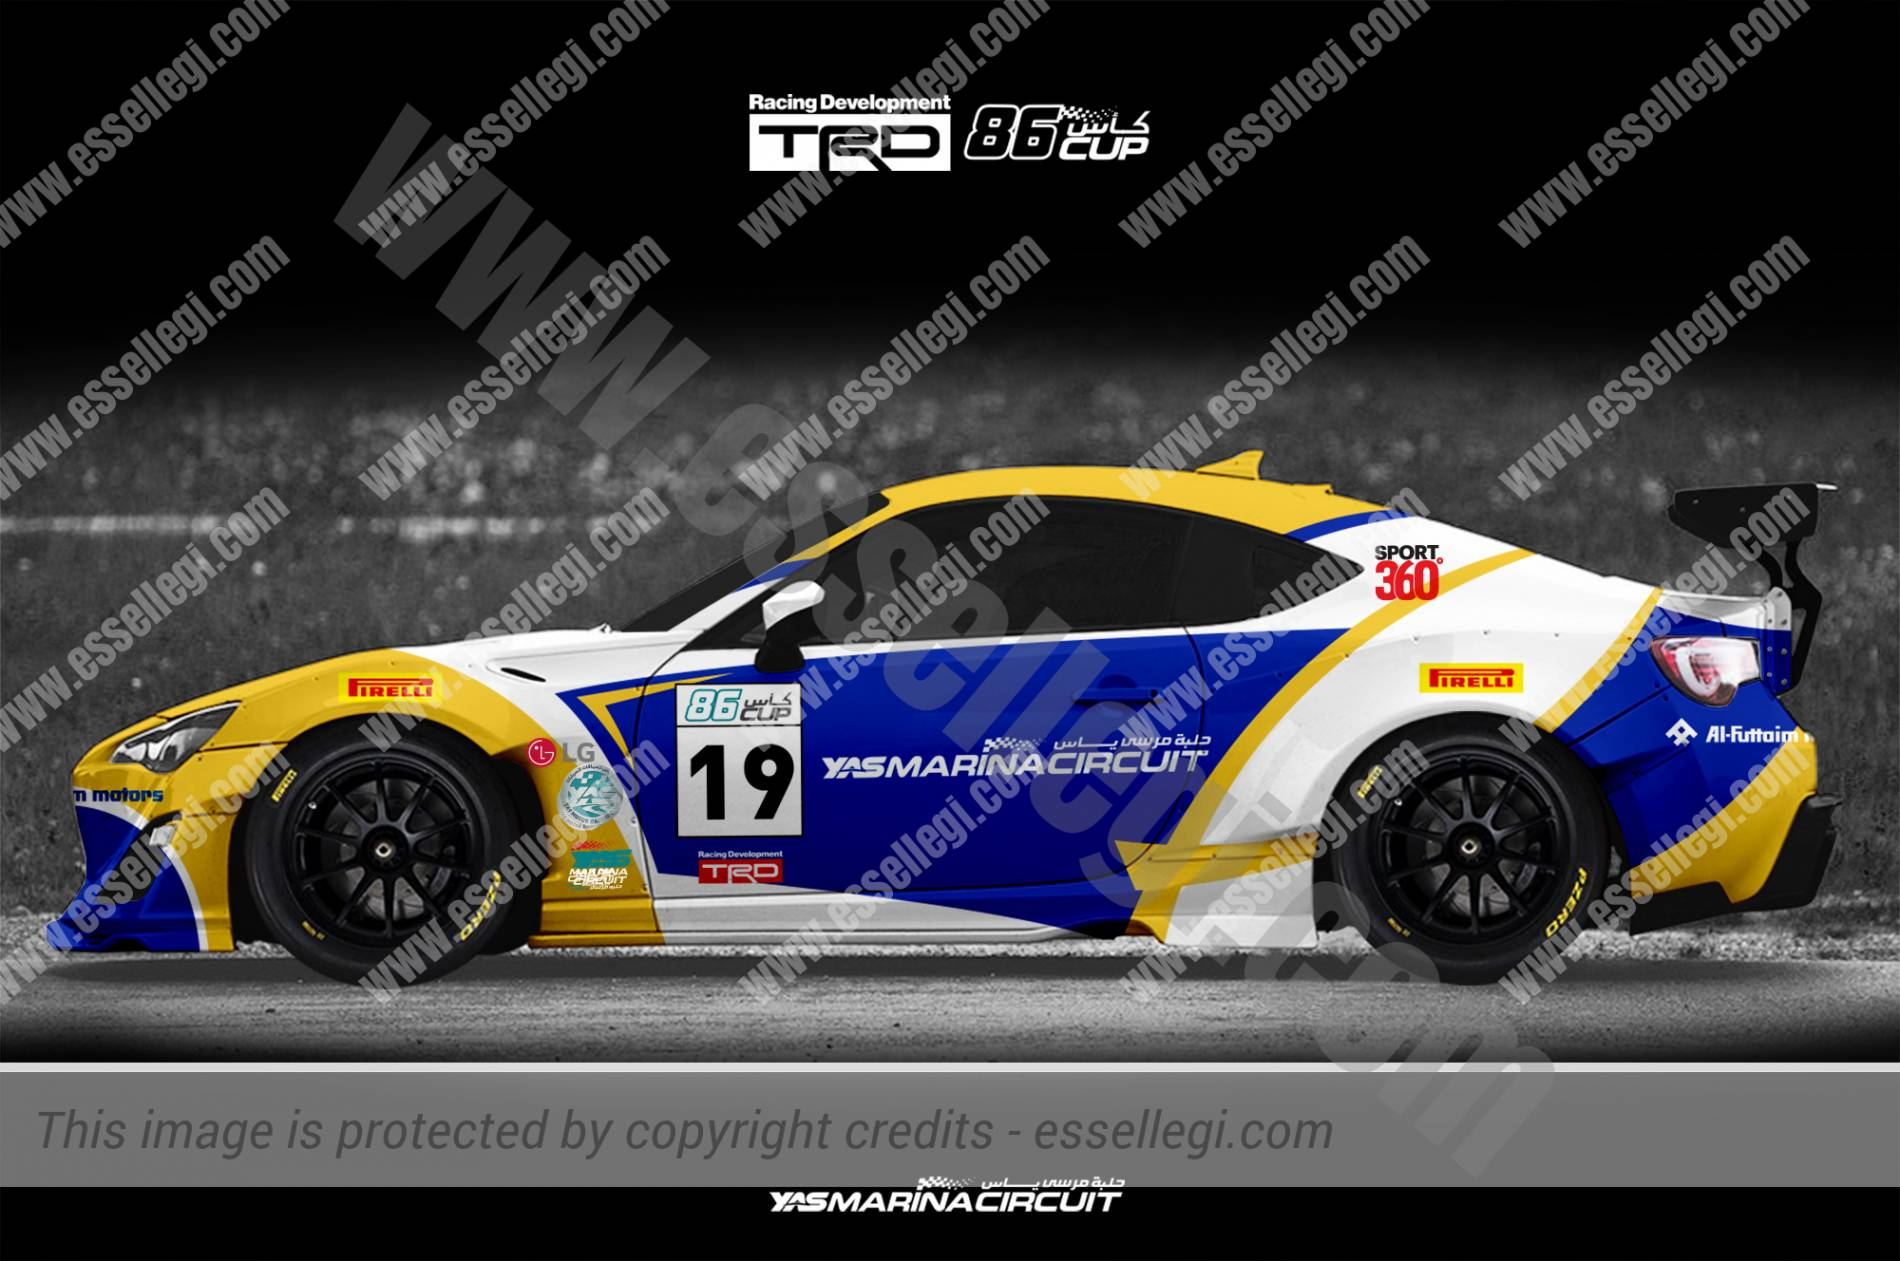 Toyota 86 Livery >> TOYOTA GT86 | MOTORSPORT - RACING - RACE CAR LIVERY